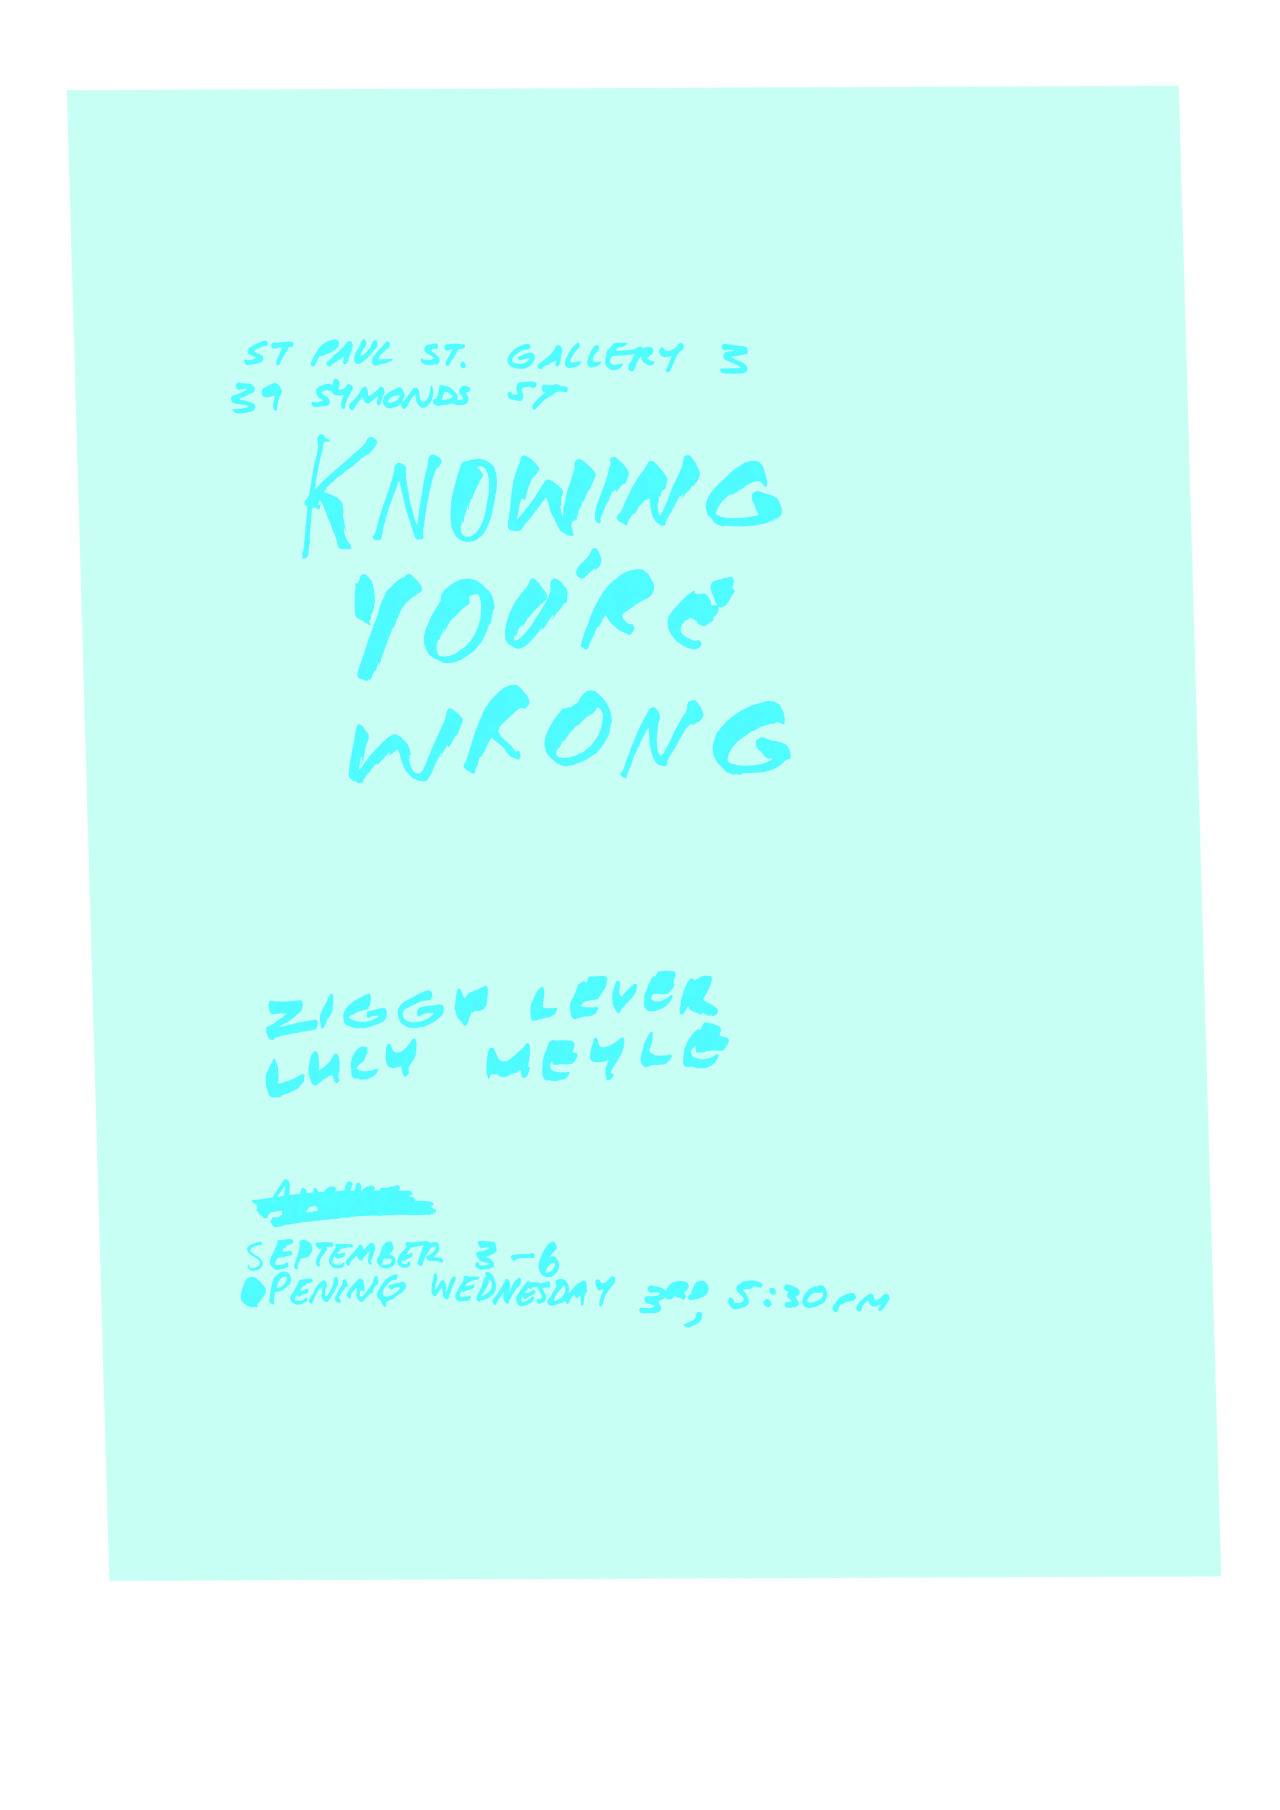 Knowing You're Wrong - Lucy Meyle and Ziggy lever September 3-6 opens Wednesday 3rd at 5.30